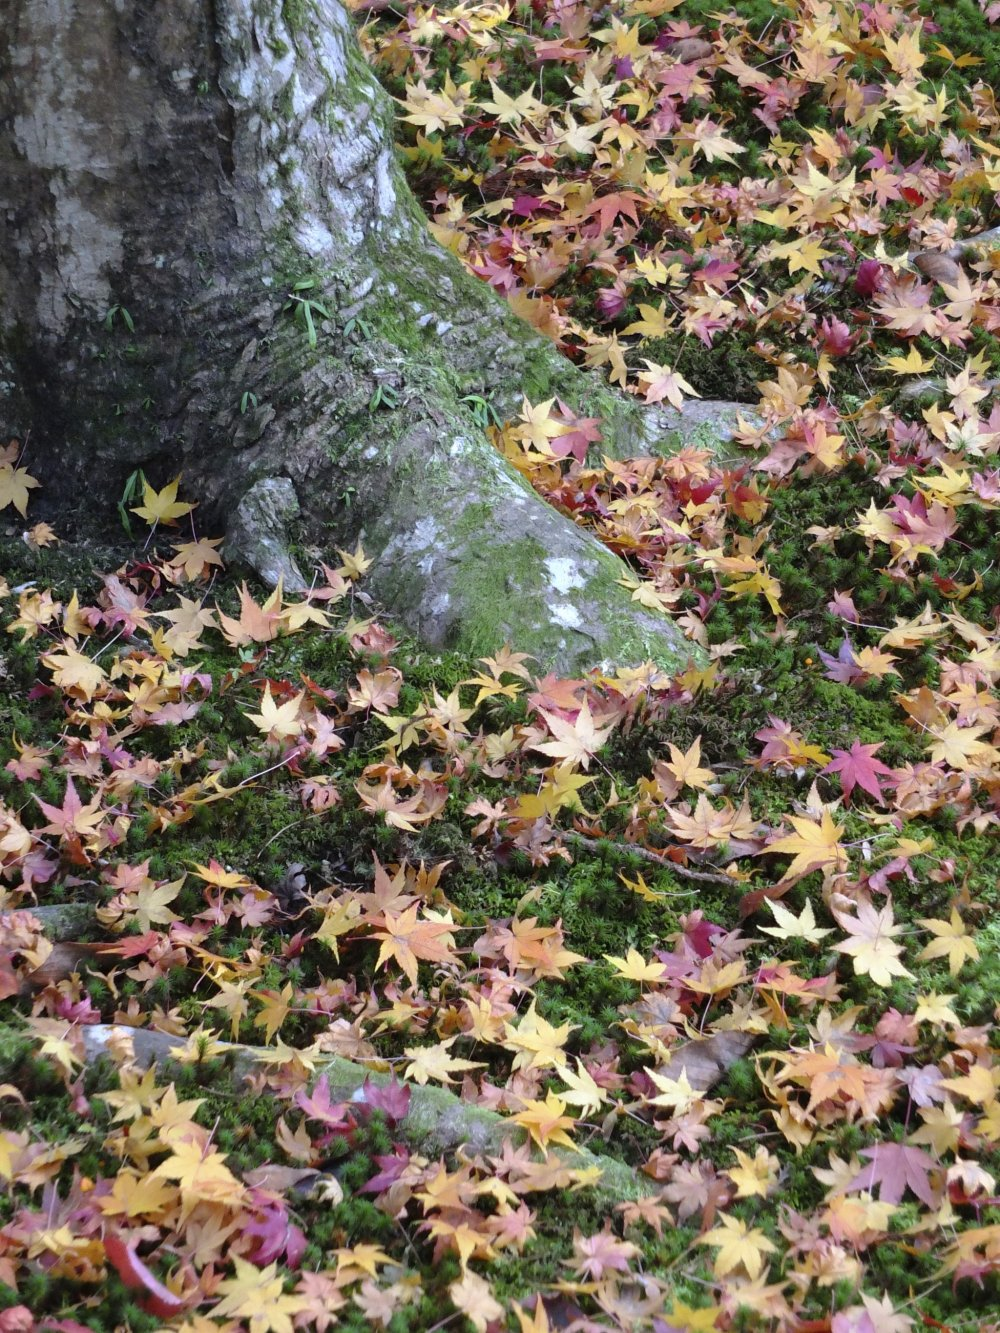 Maple leaves blanket a moss carpet